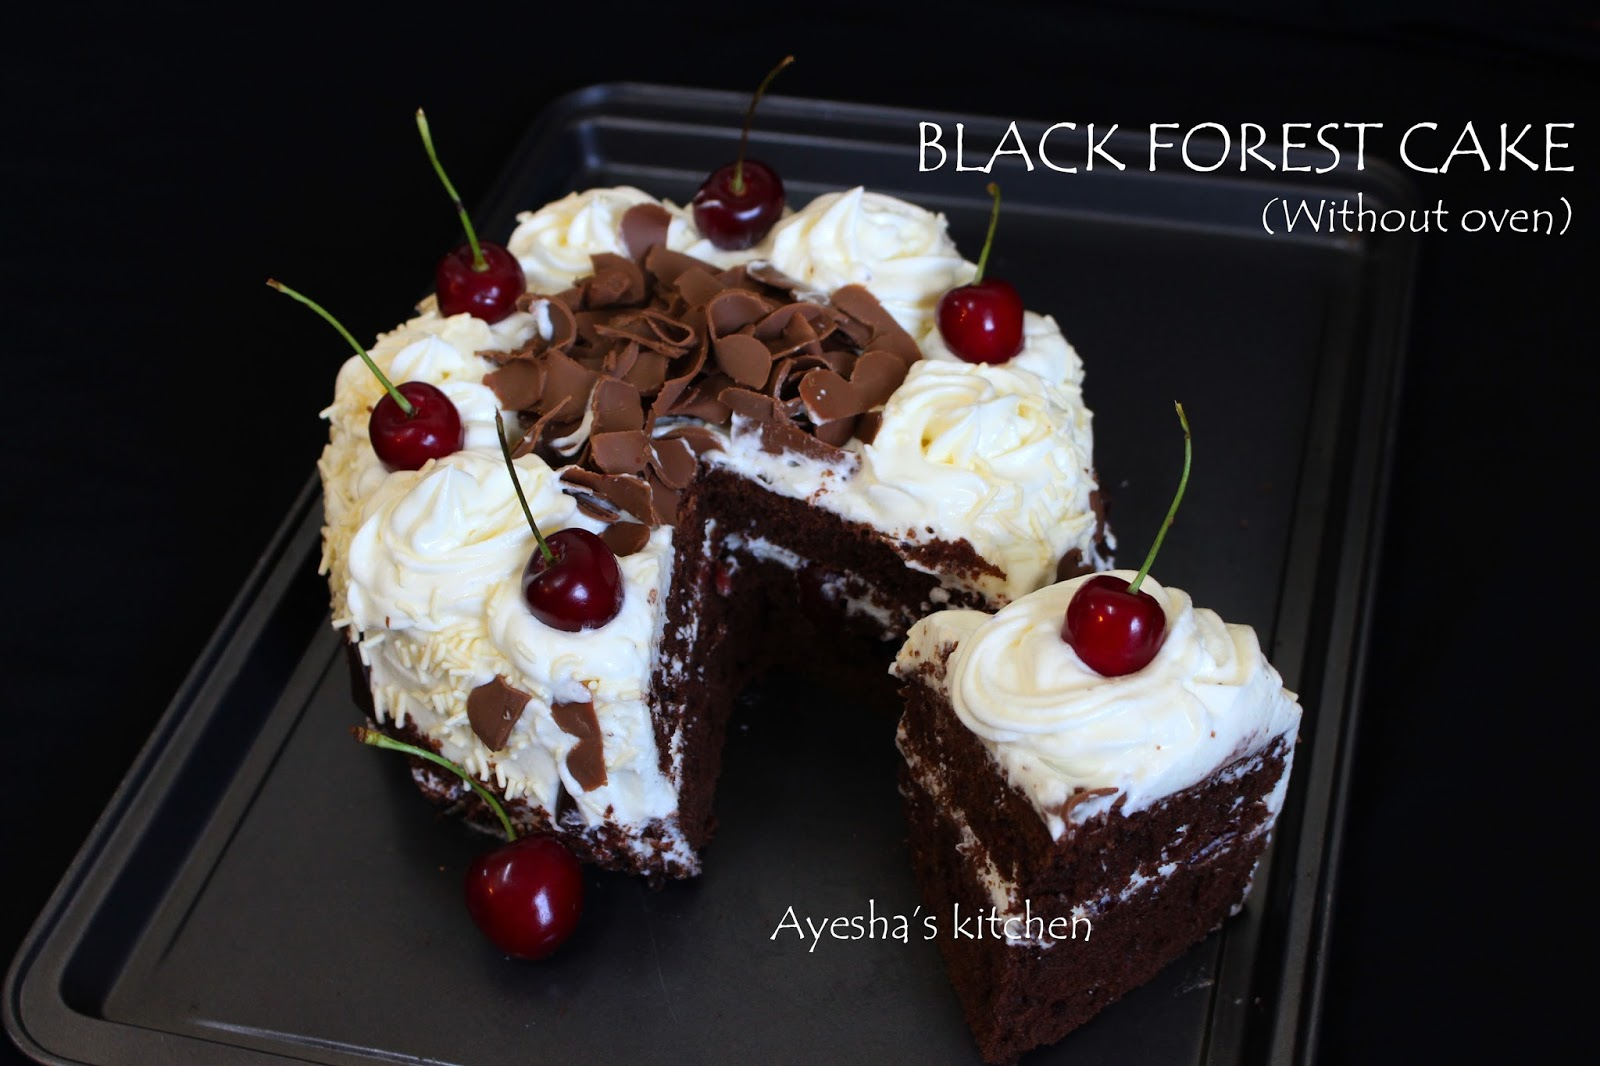 How To Make Black Forest Cake At Home Without Oven